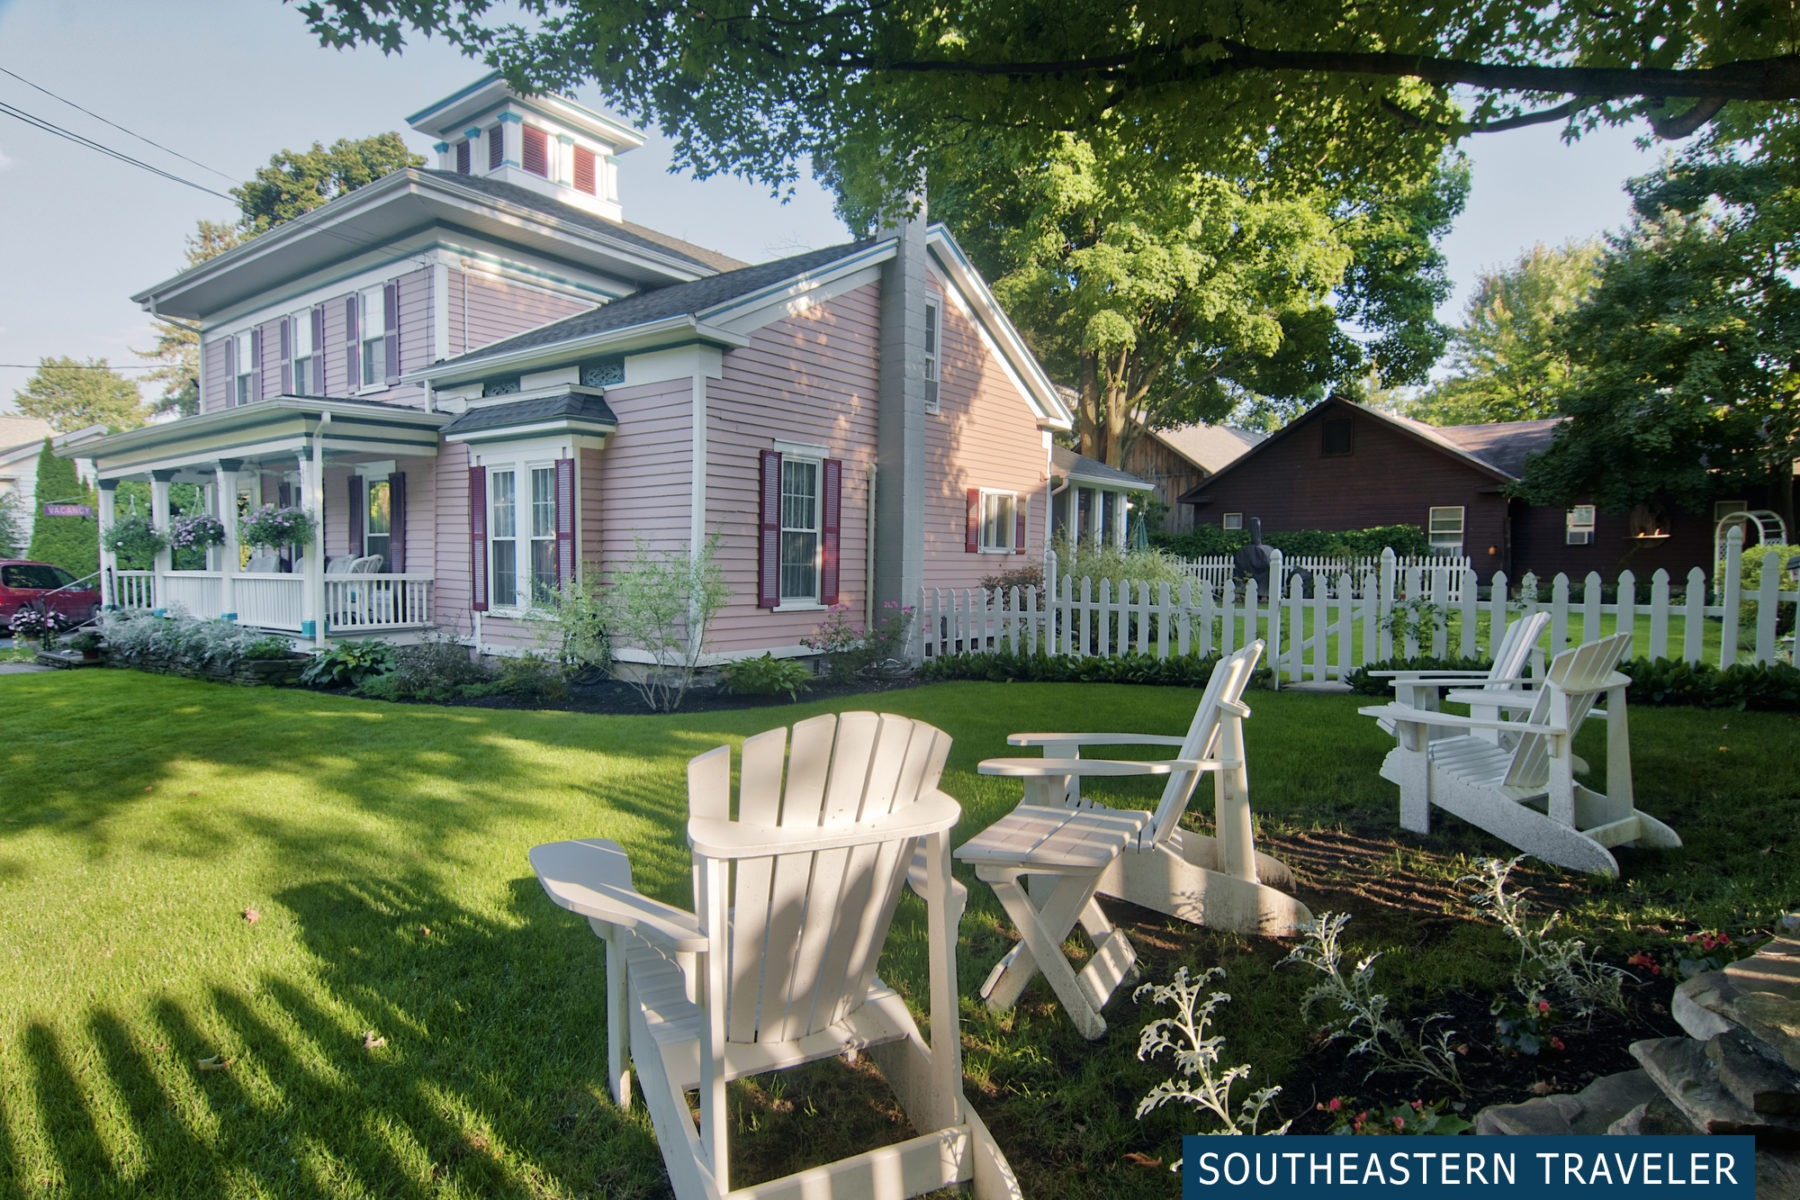 Outside the Blushing Rose Bed and Breakfast with adirondack chairs on a beautiful lawn beneath the shade of a tree